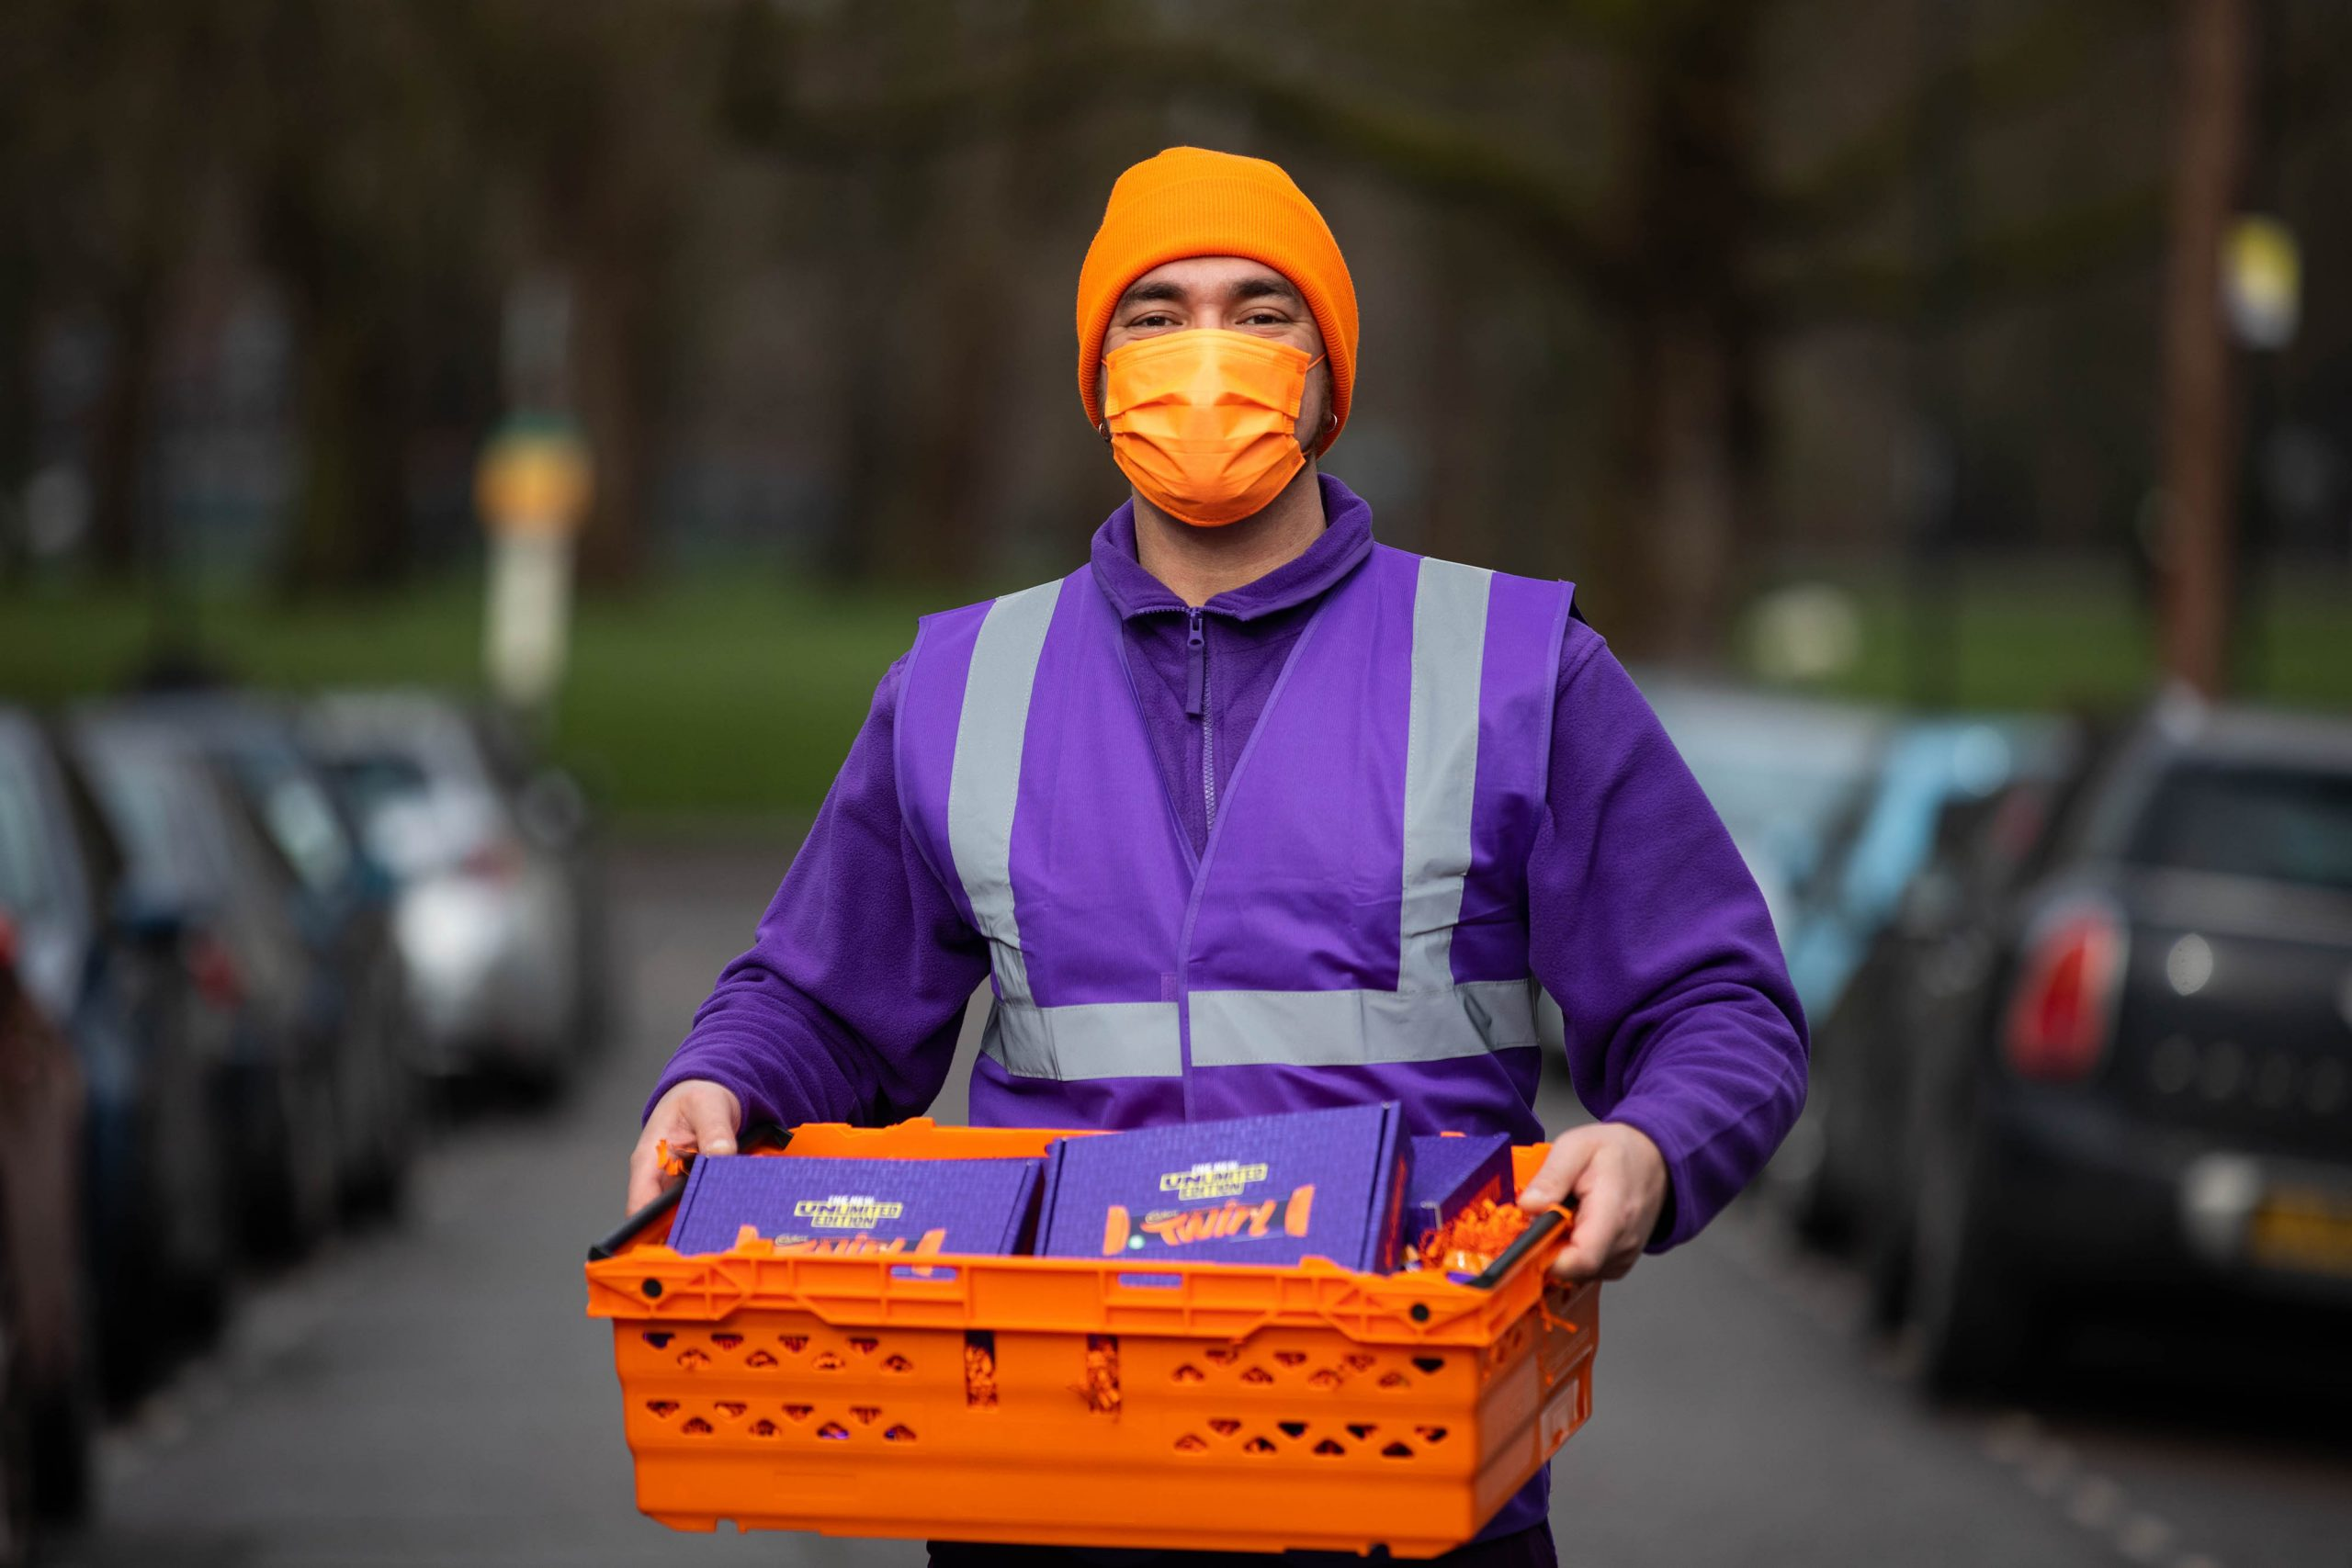 Cadbury Twirl Orange Unlimited Edition deliveries, London. PA Photo. Picture date: Monday February 15, 2021. Photo credit should read: David Parry/PA Wire